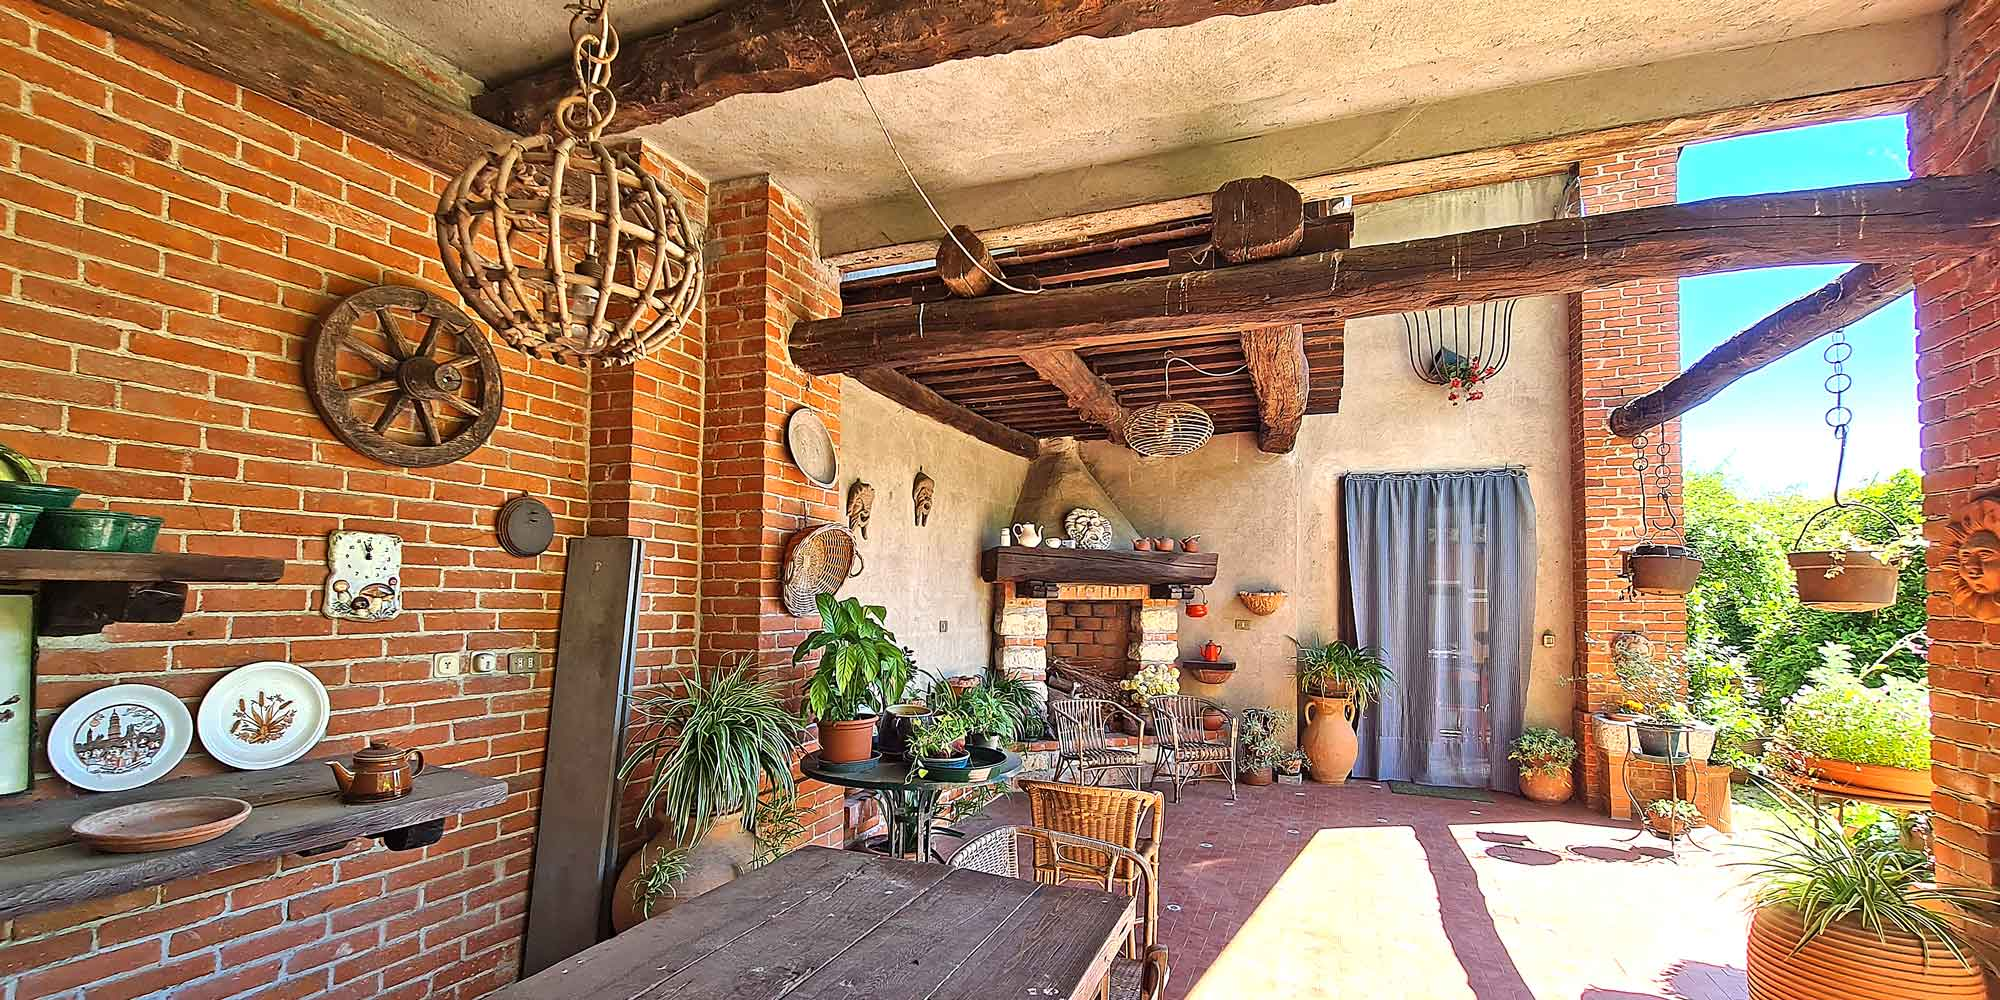 #1555 Semi-detached house with garden